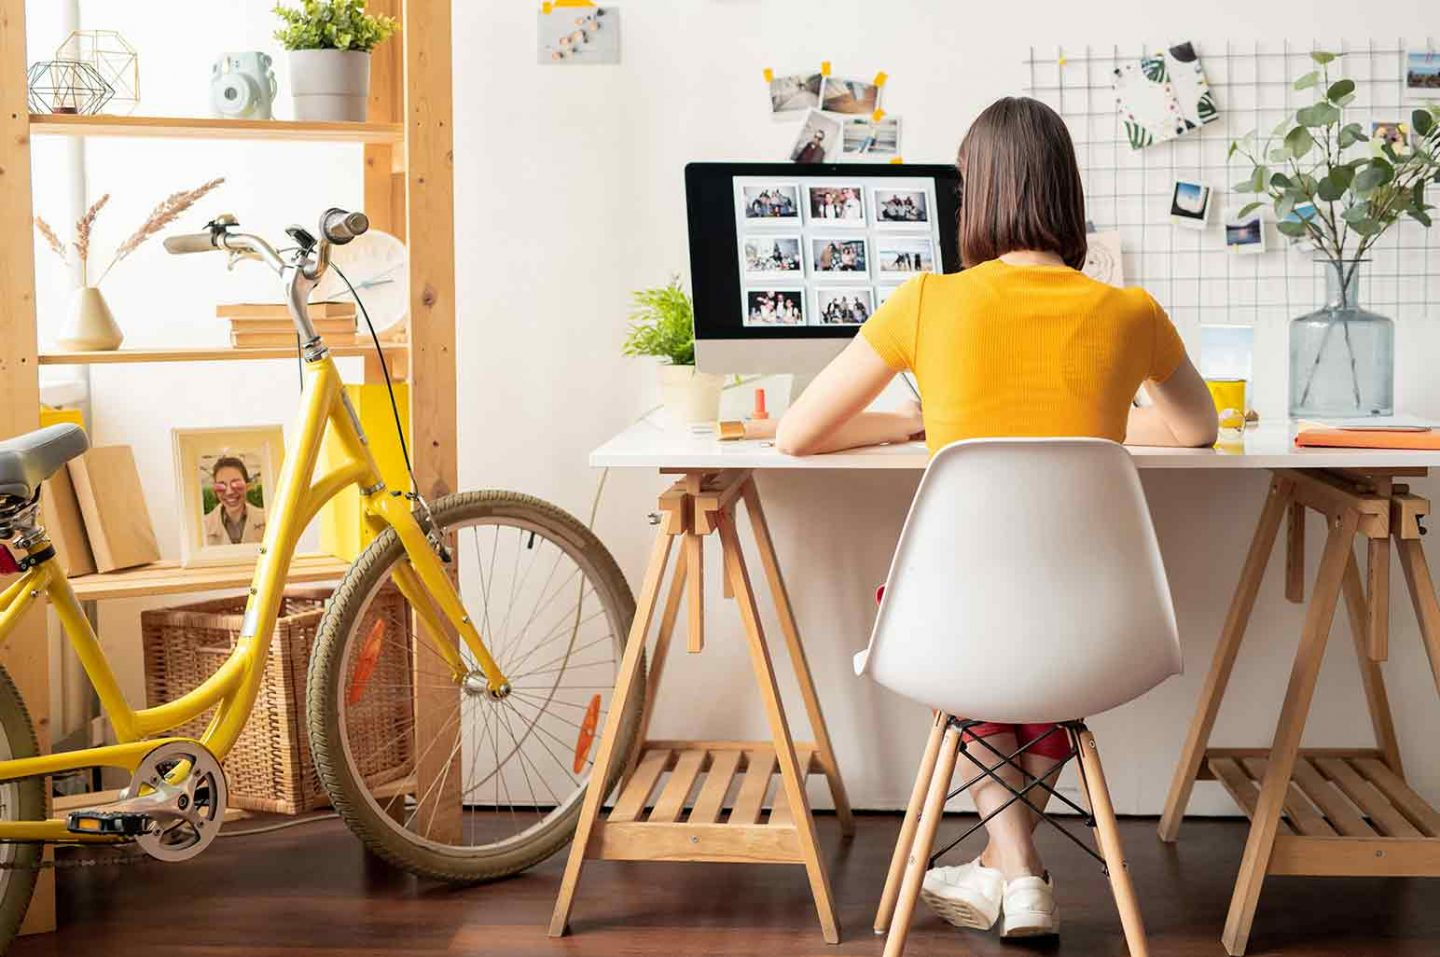 Solutions to Make Working Space Comfortable